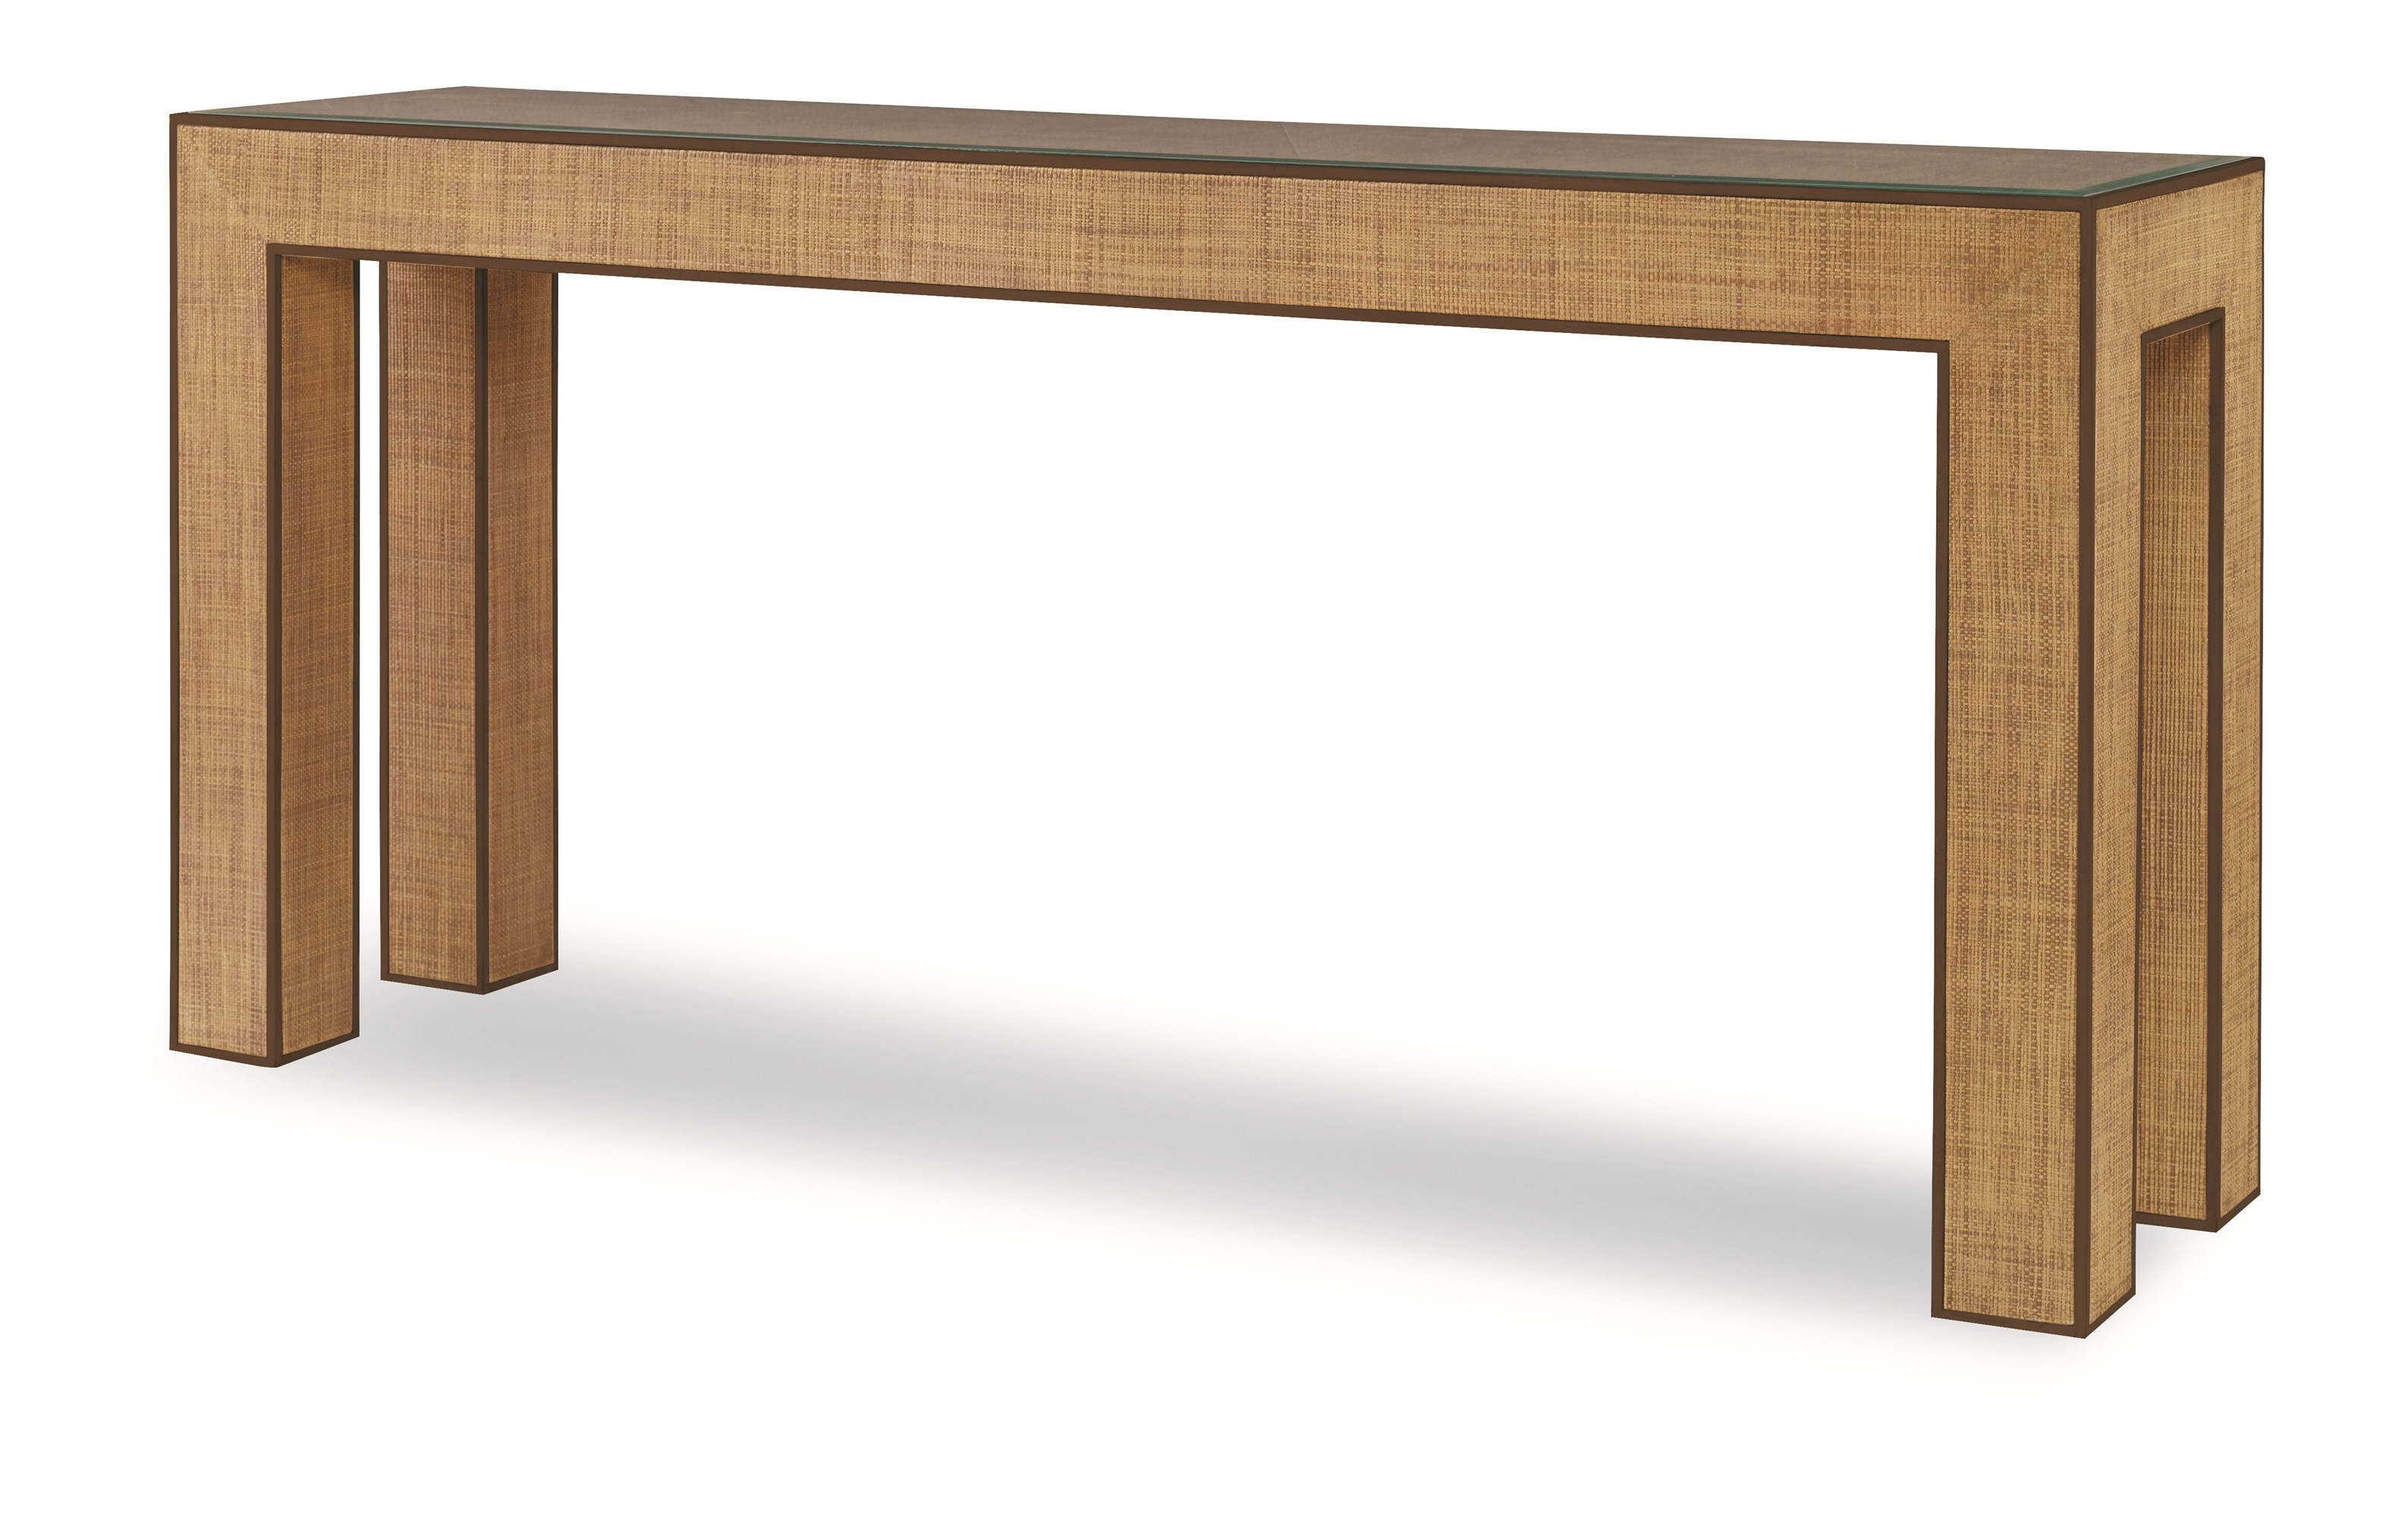 Newport Console Table-Sand/Light Brown (Pv-270-209-100, C209-270)